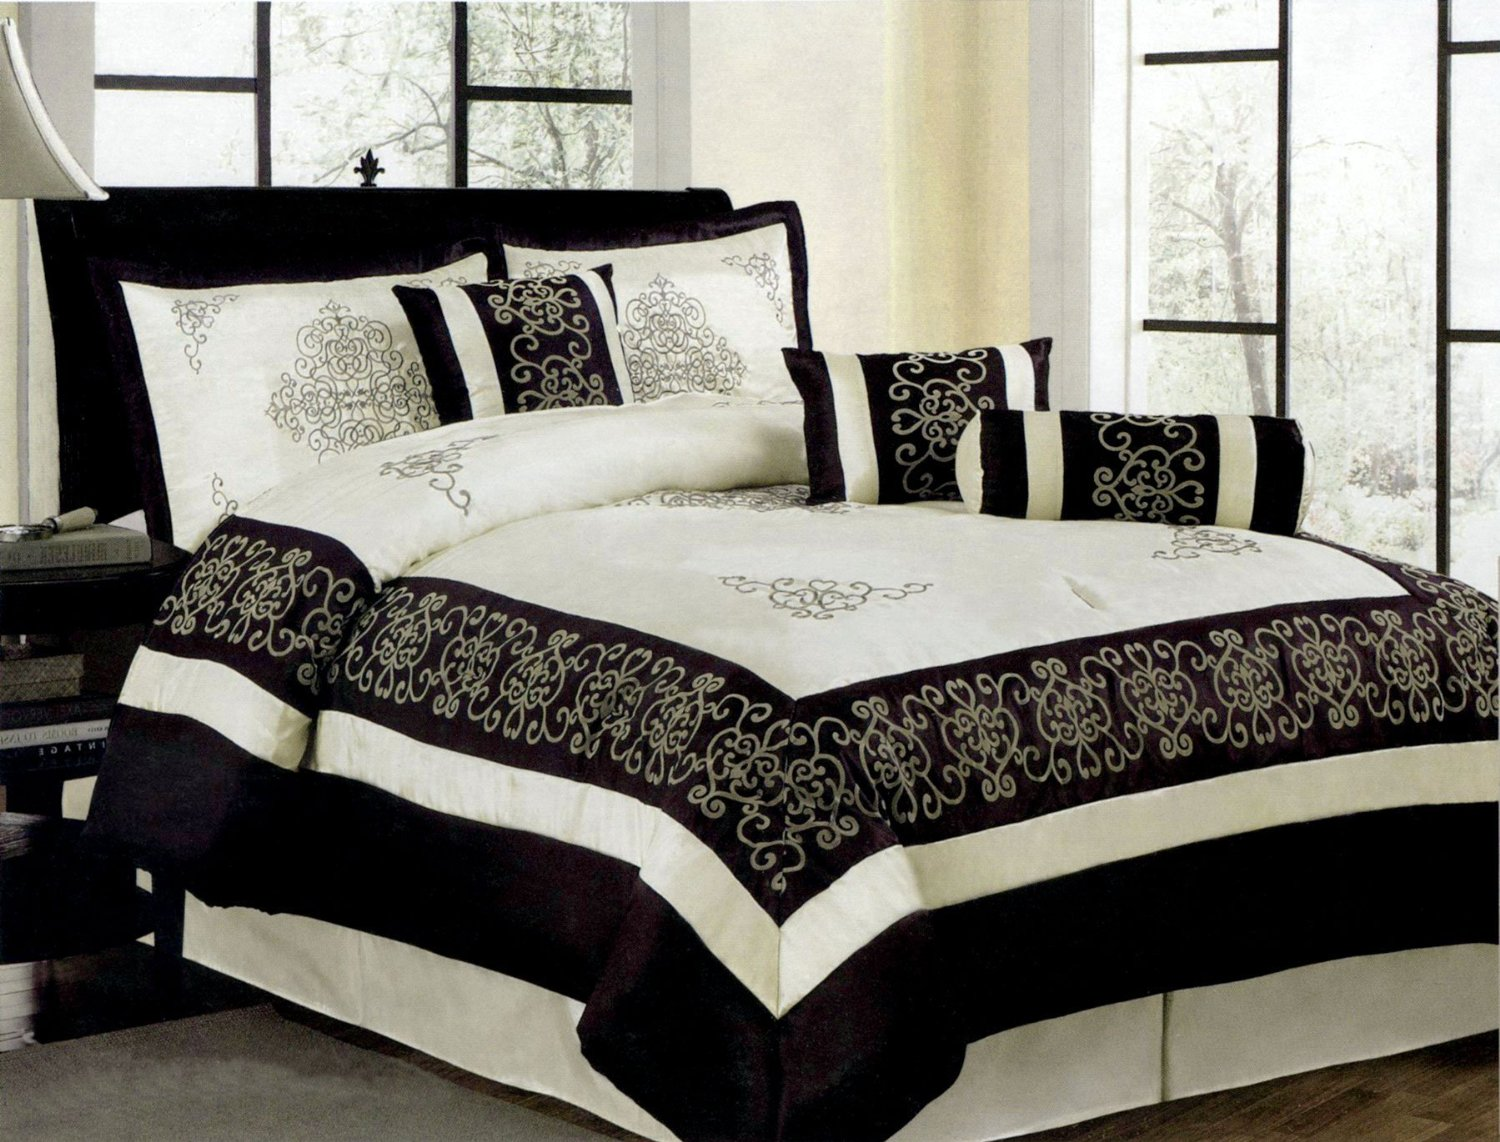 comforter bath ultra ivory madison park free product sets overstock today piece shipping plush set bedding syracuse